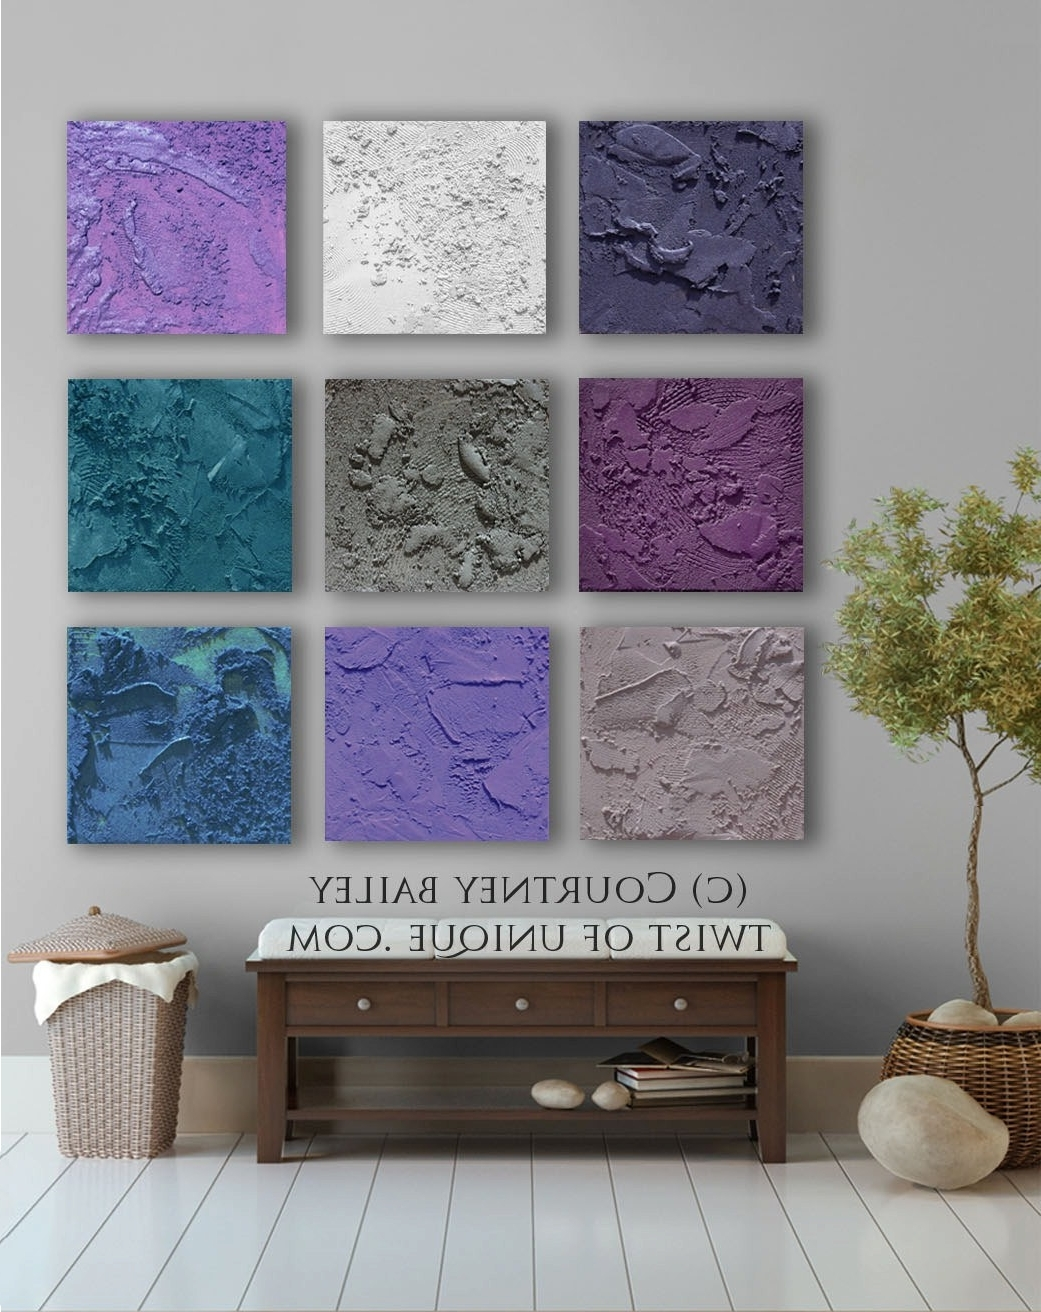 Purple And Grey Abstract Wall Art Inside Well Known Square Abstract Painting, 9 Panel Custom Abstract Wall Art, Large (View 11 of 15)